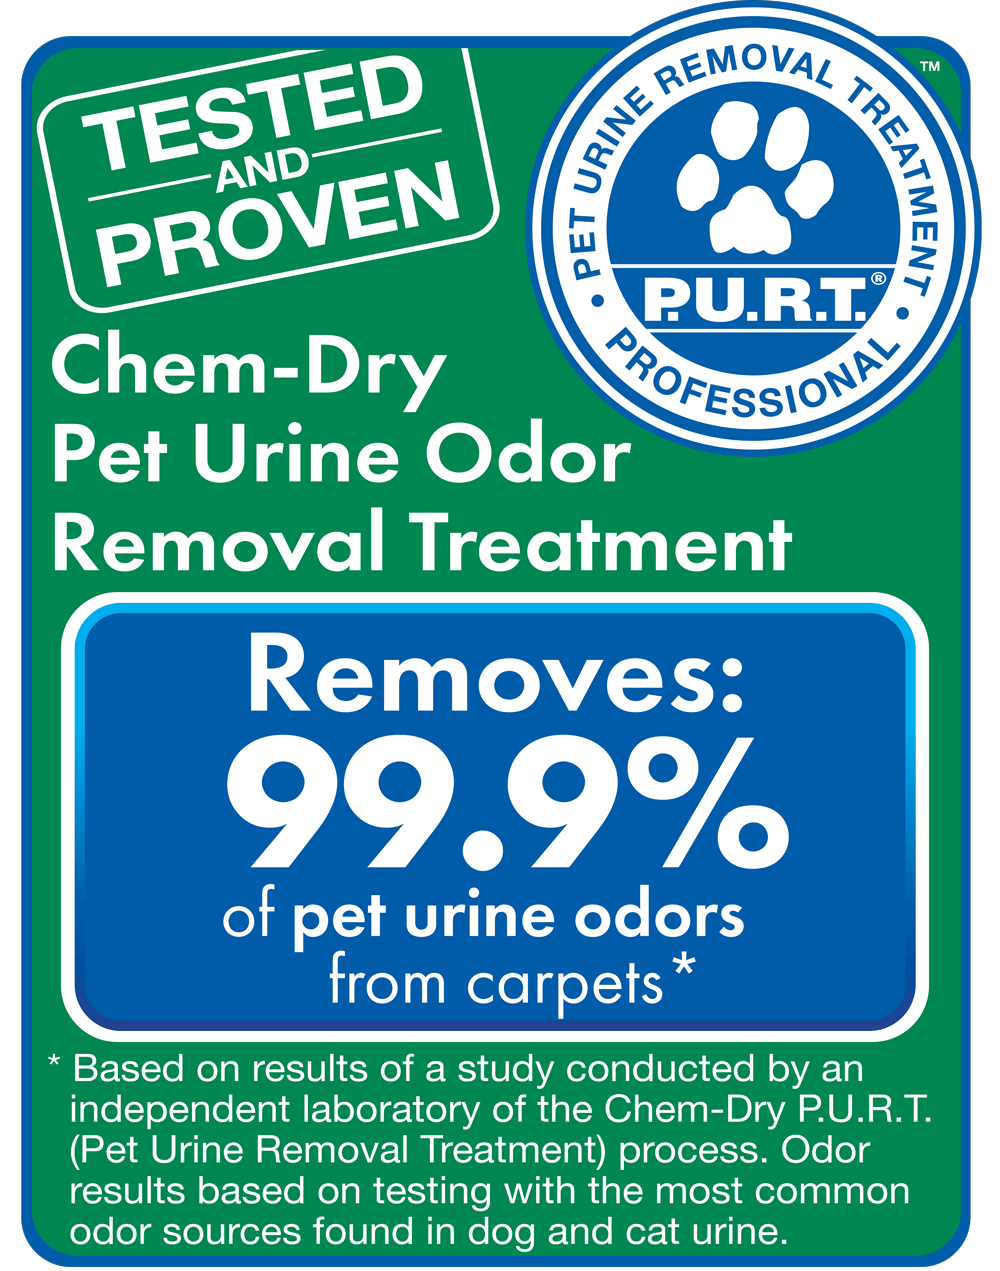 chem dry removes allergens San Francisco test results